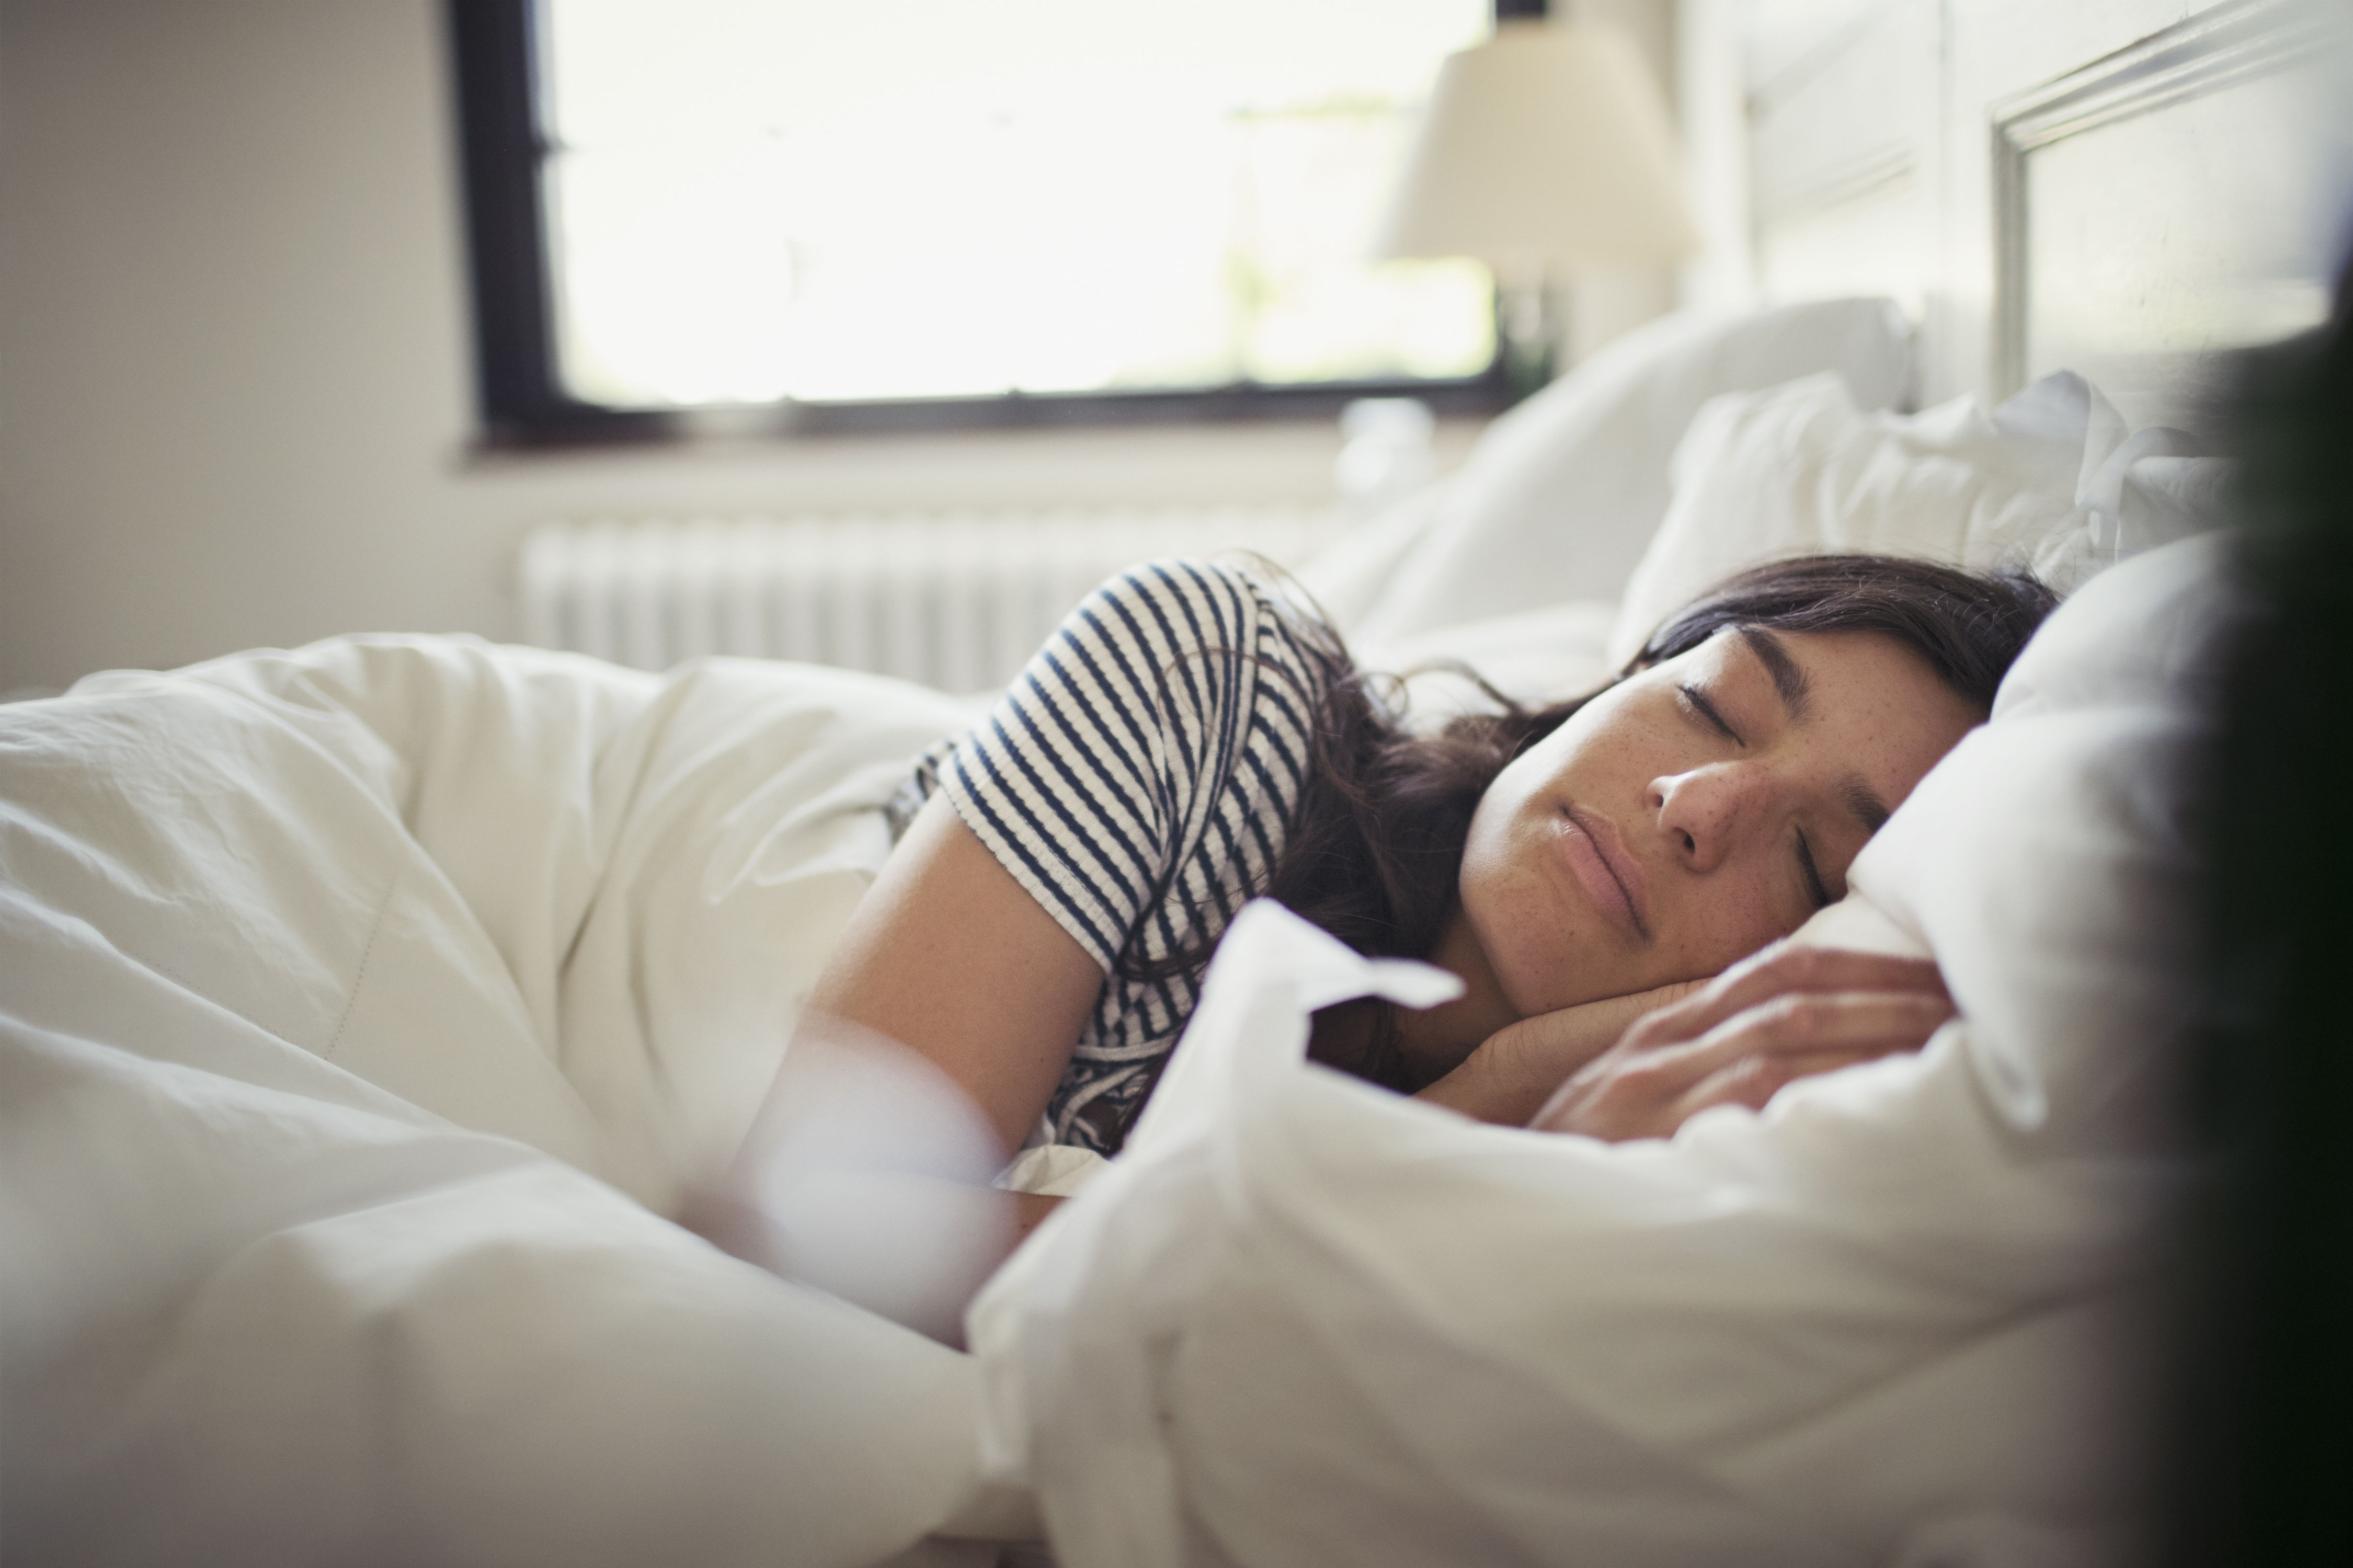 How to Stop Sleep Wrinkles from Your Pillow